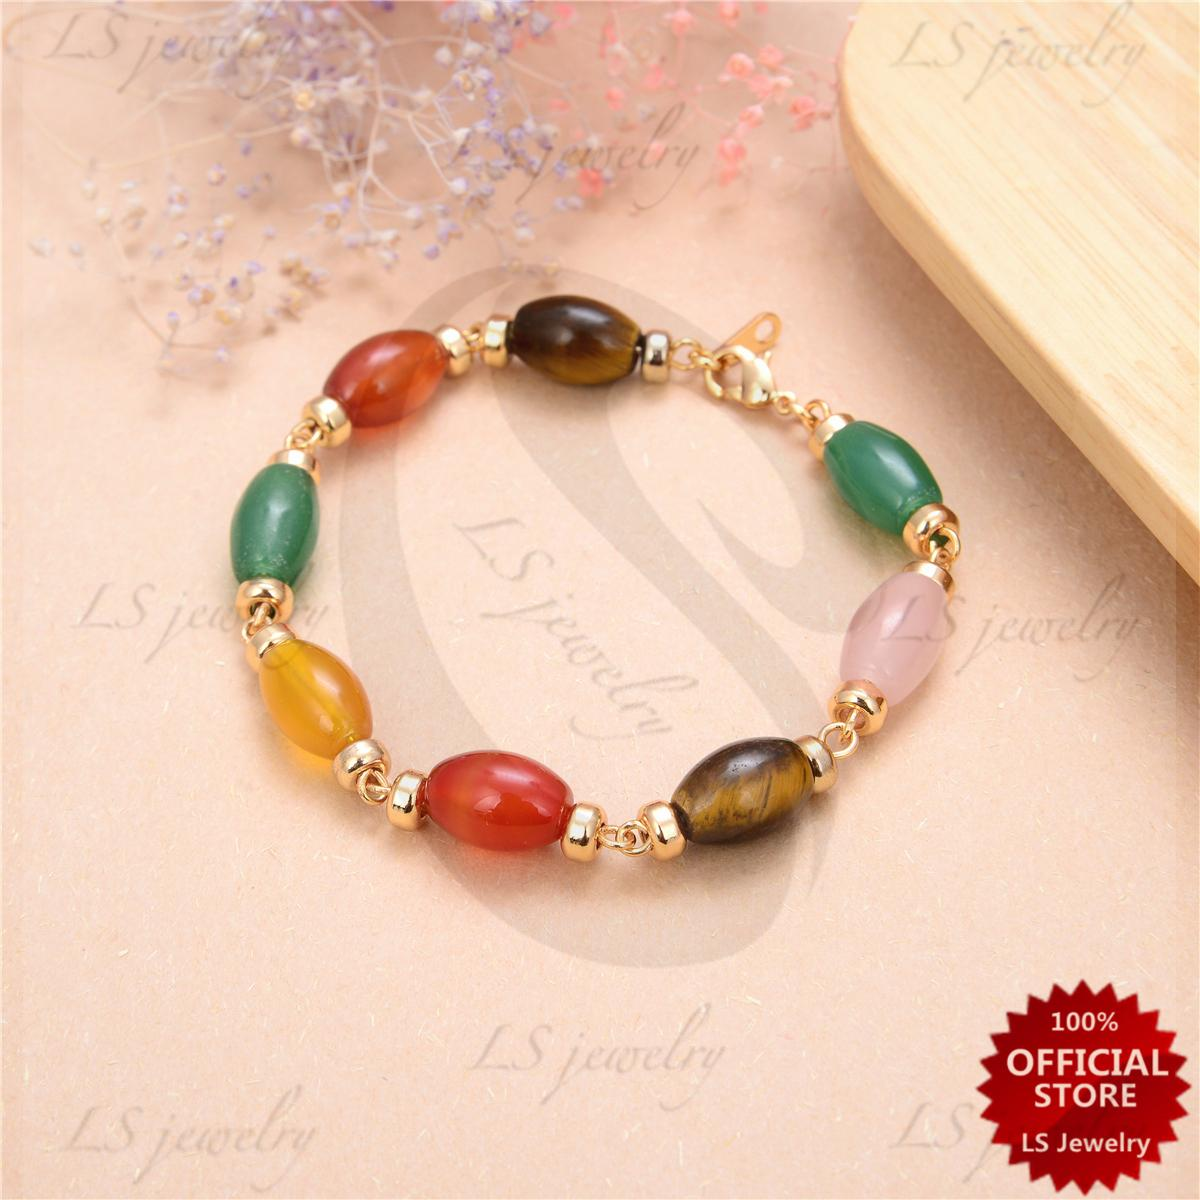 Bracelets For Women Sale Womens Bangles Online Brands Prices Cincin Multicolor Tiny Square Austrian Crystal Gold Plated Ring Lsjewelry Lucky Charms Agate And Stainless Bracelet B1011